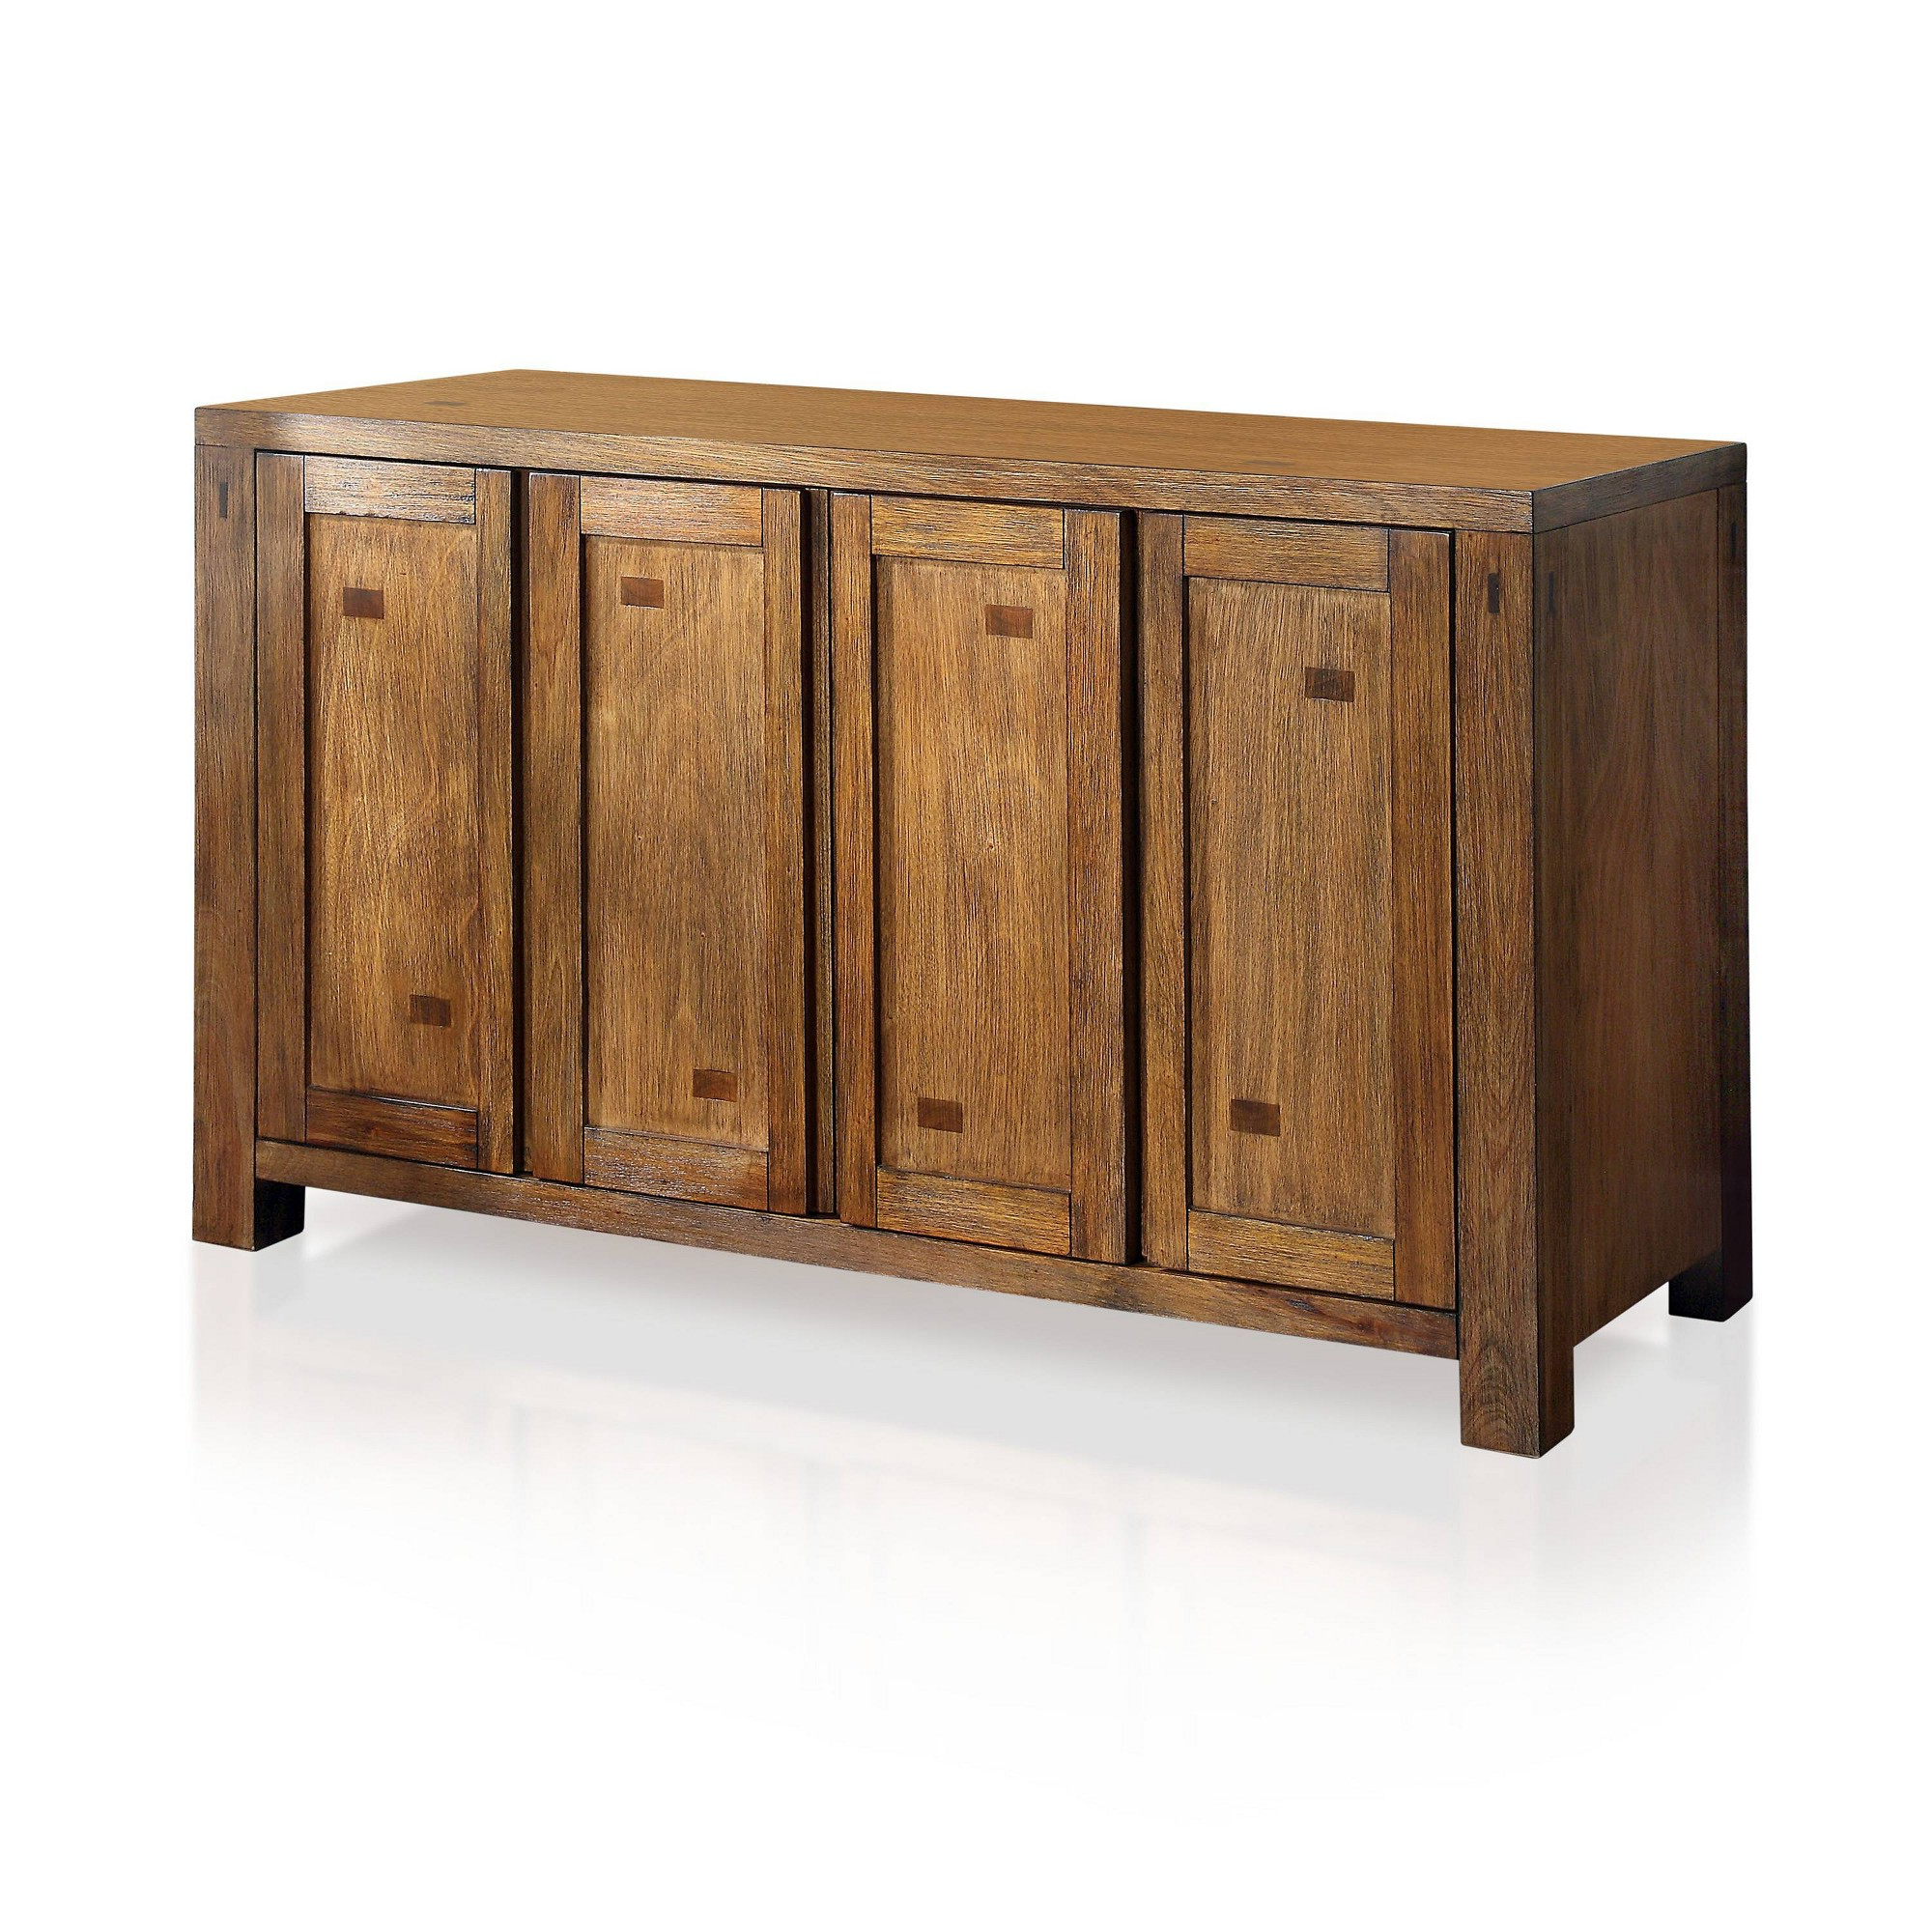 Trendy Dillen Sideboards Pertaining To Morrison Dining Buffet Dark Oak – Sun & Pine, Brown (View 16 of 20)